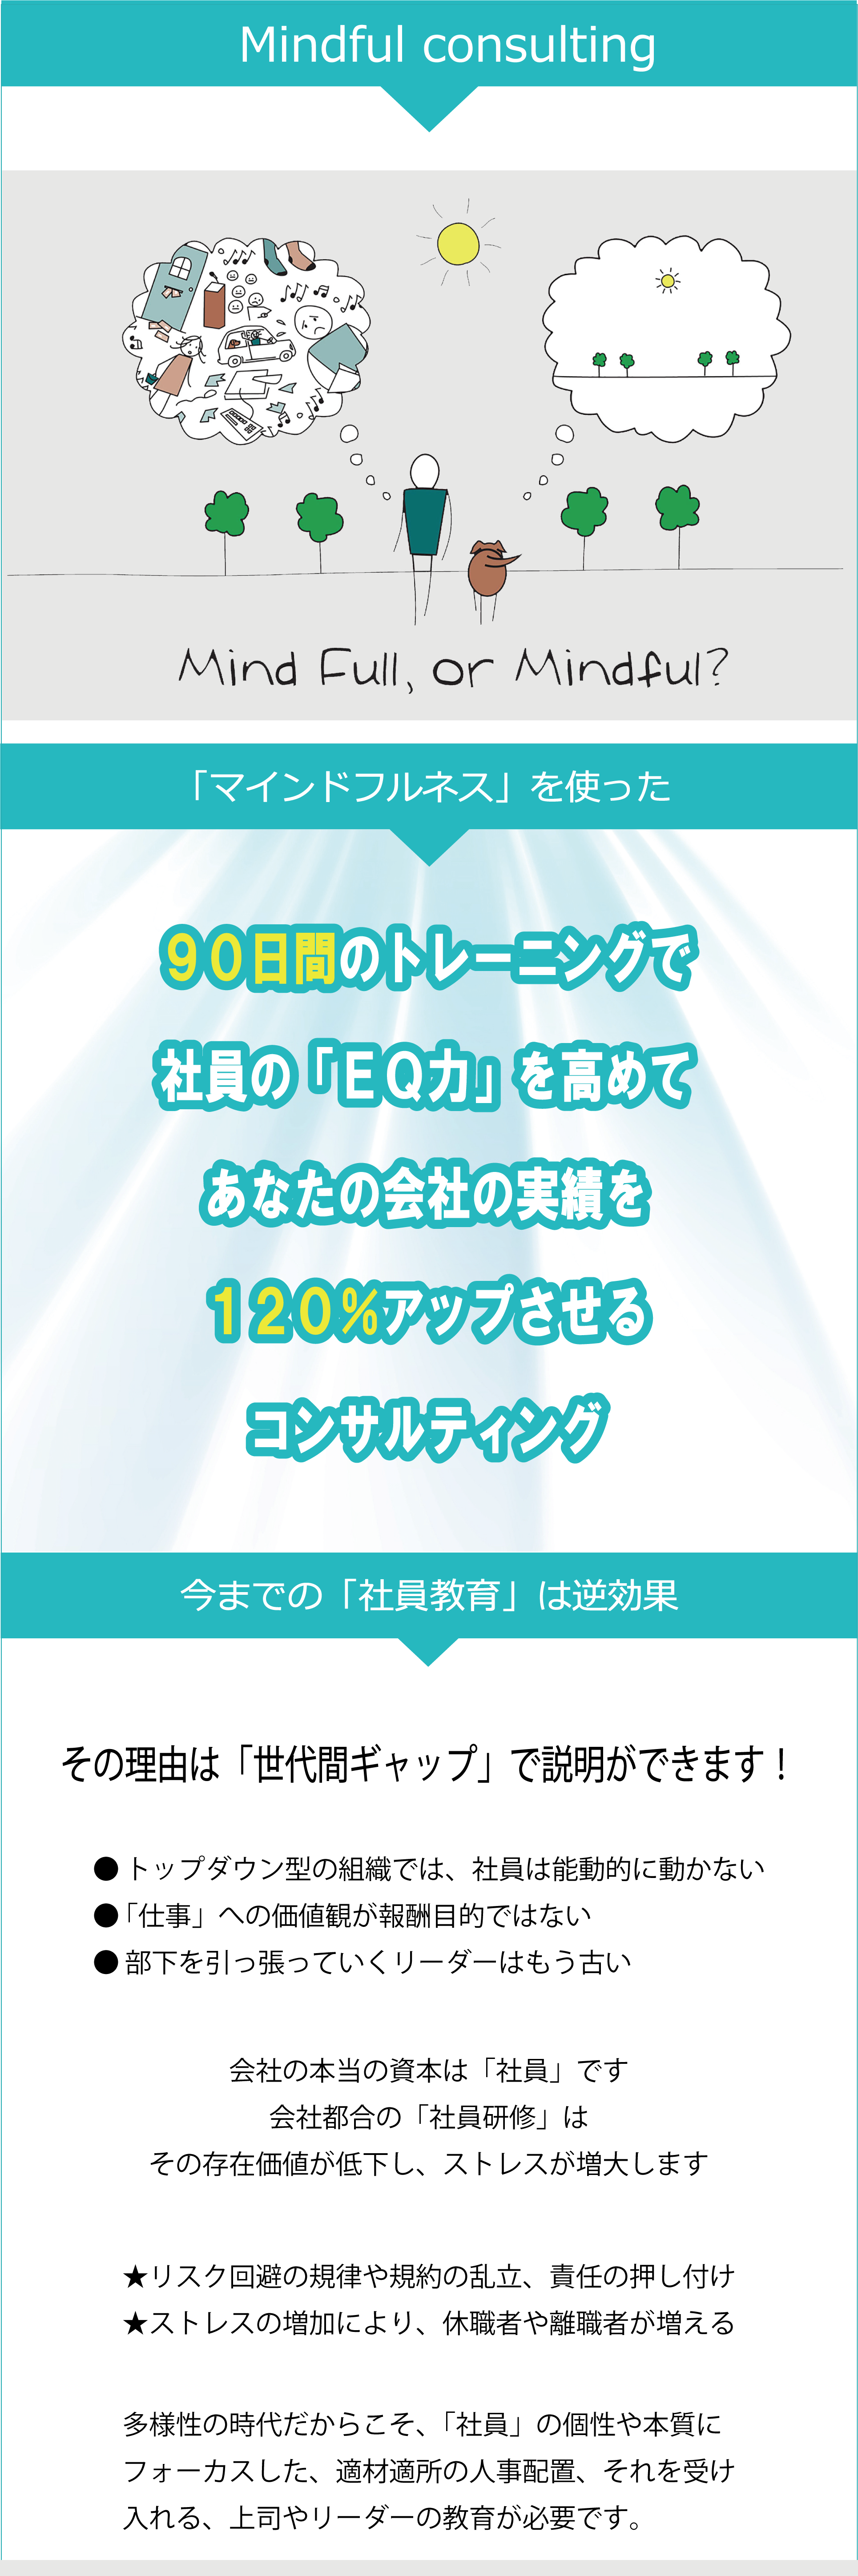 """mind10-1 <span style=""""font-size: 24pt; color:#E2faeb4;"""">企業コンサルティング</span>"""